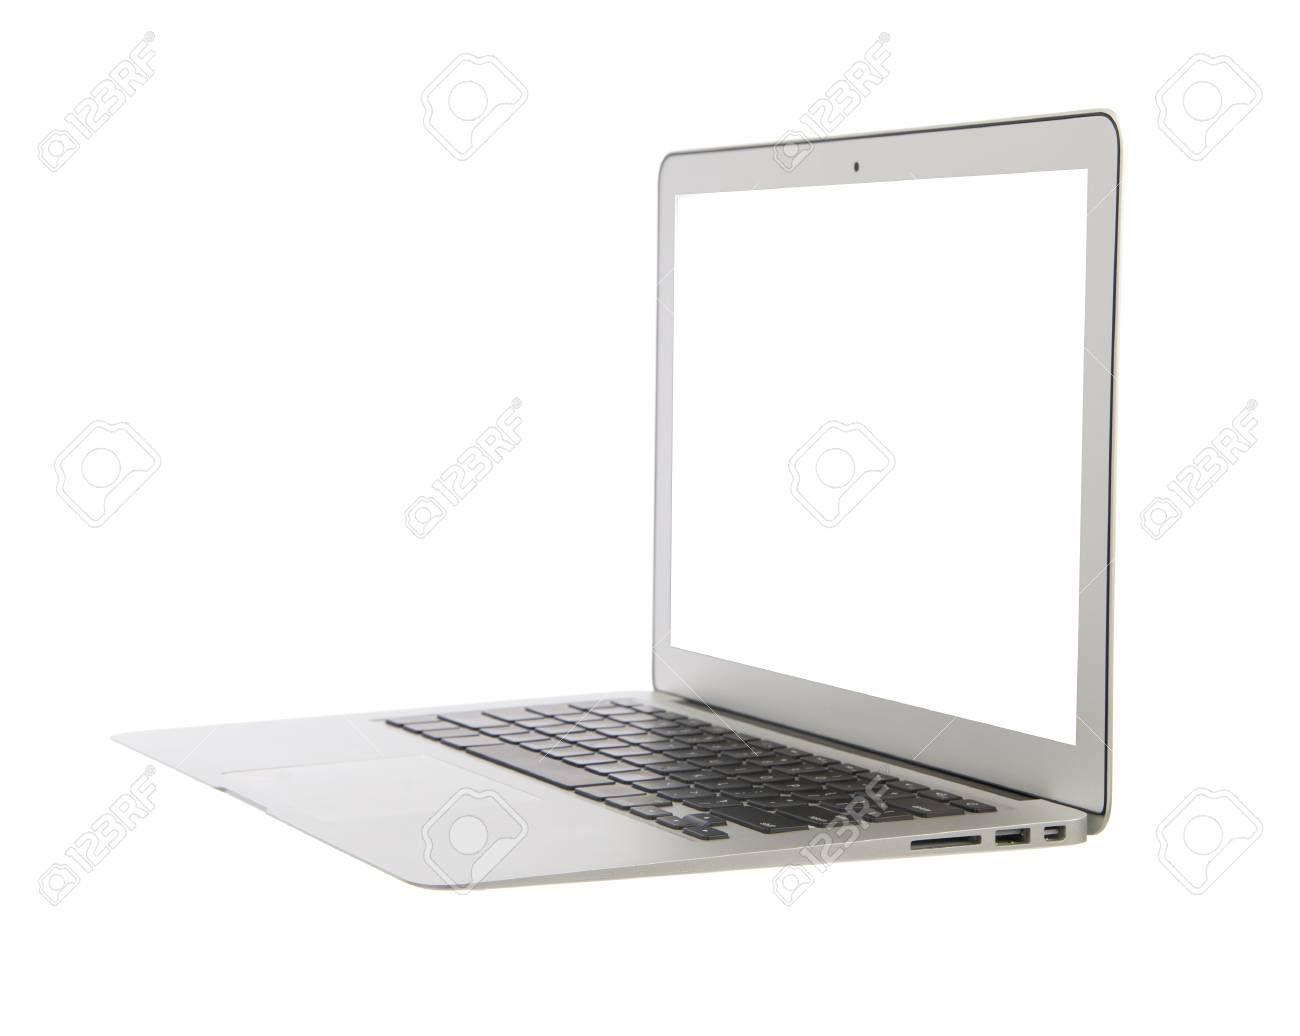 Weiße Laptops Stock Photo